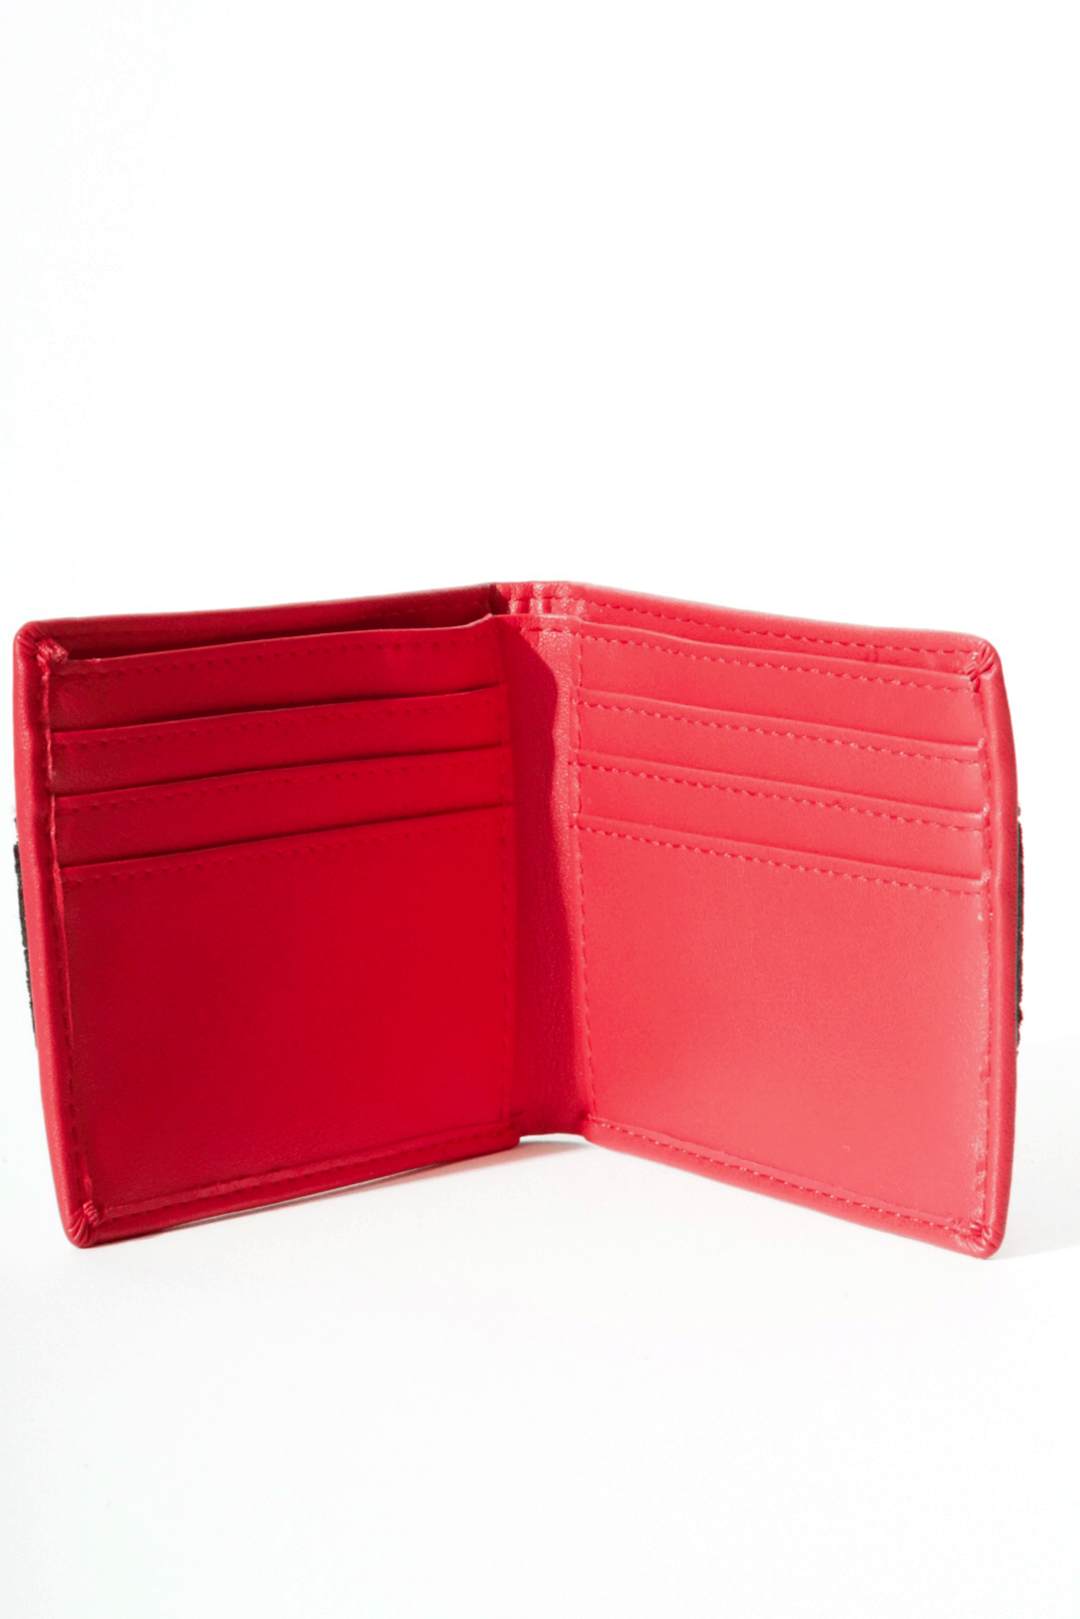 Men's Logo Taping - Limited Edition Red Wallet